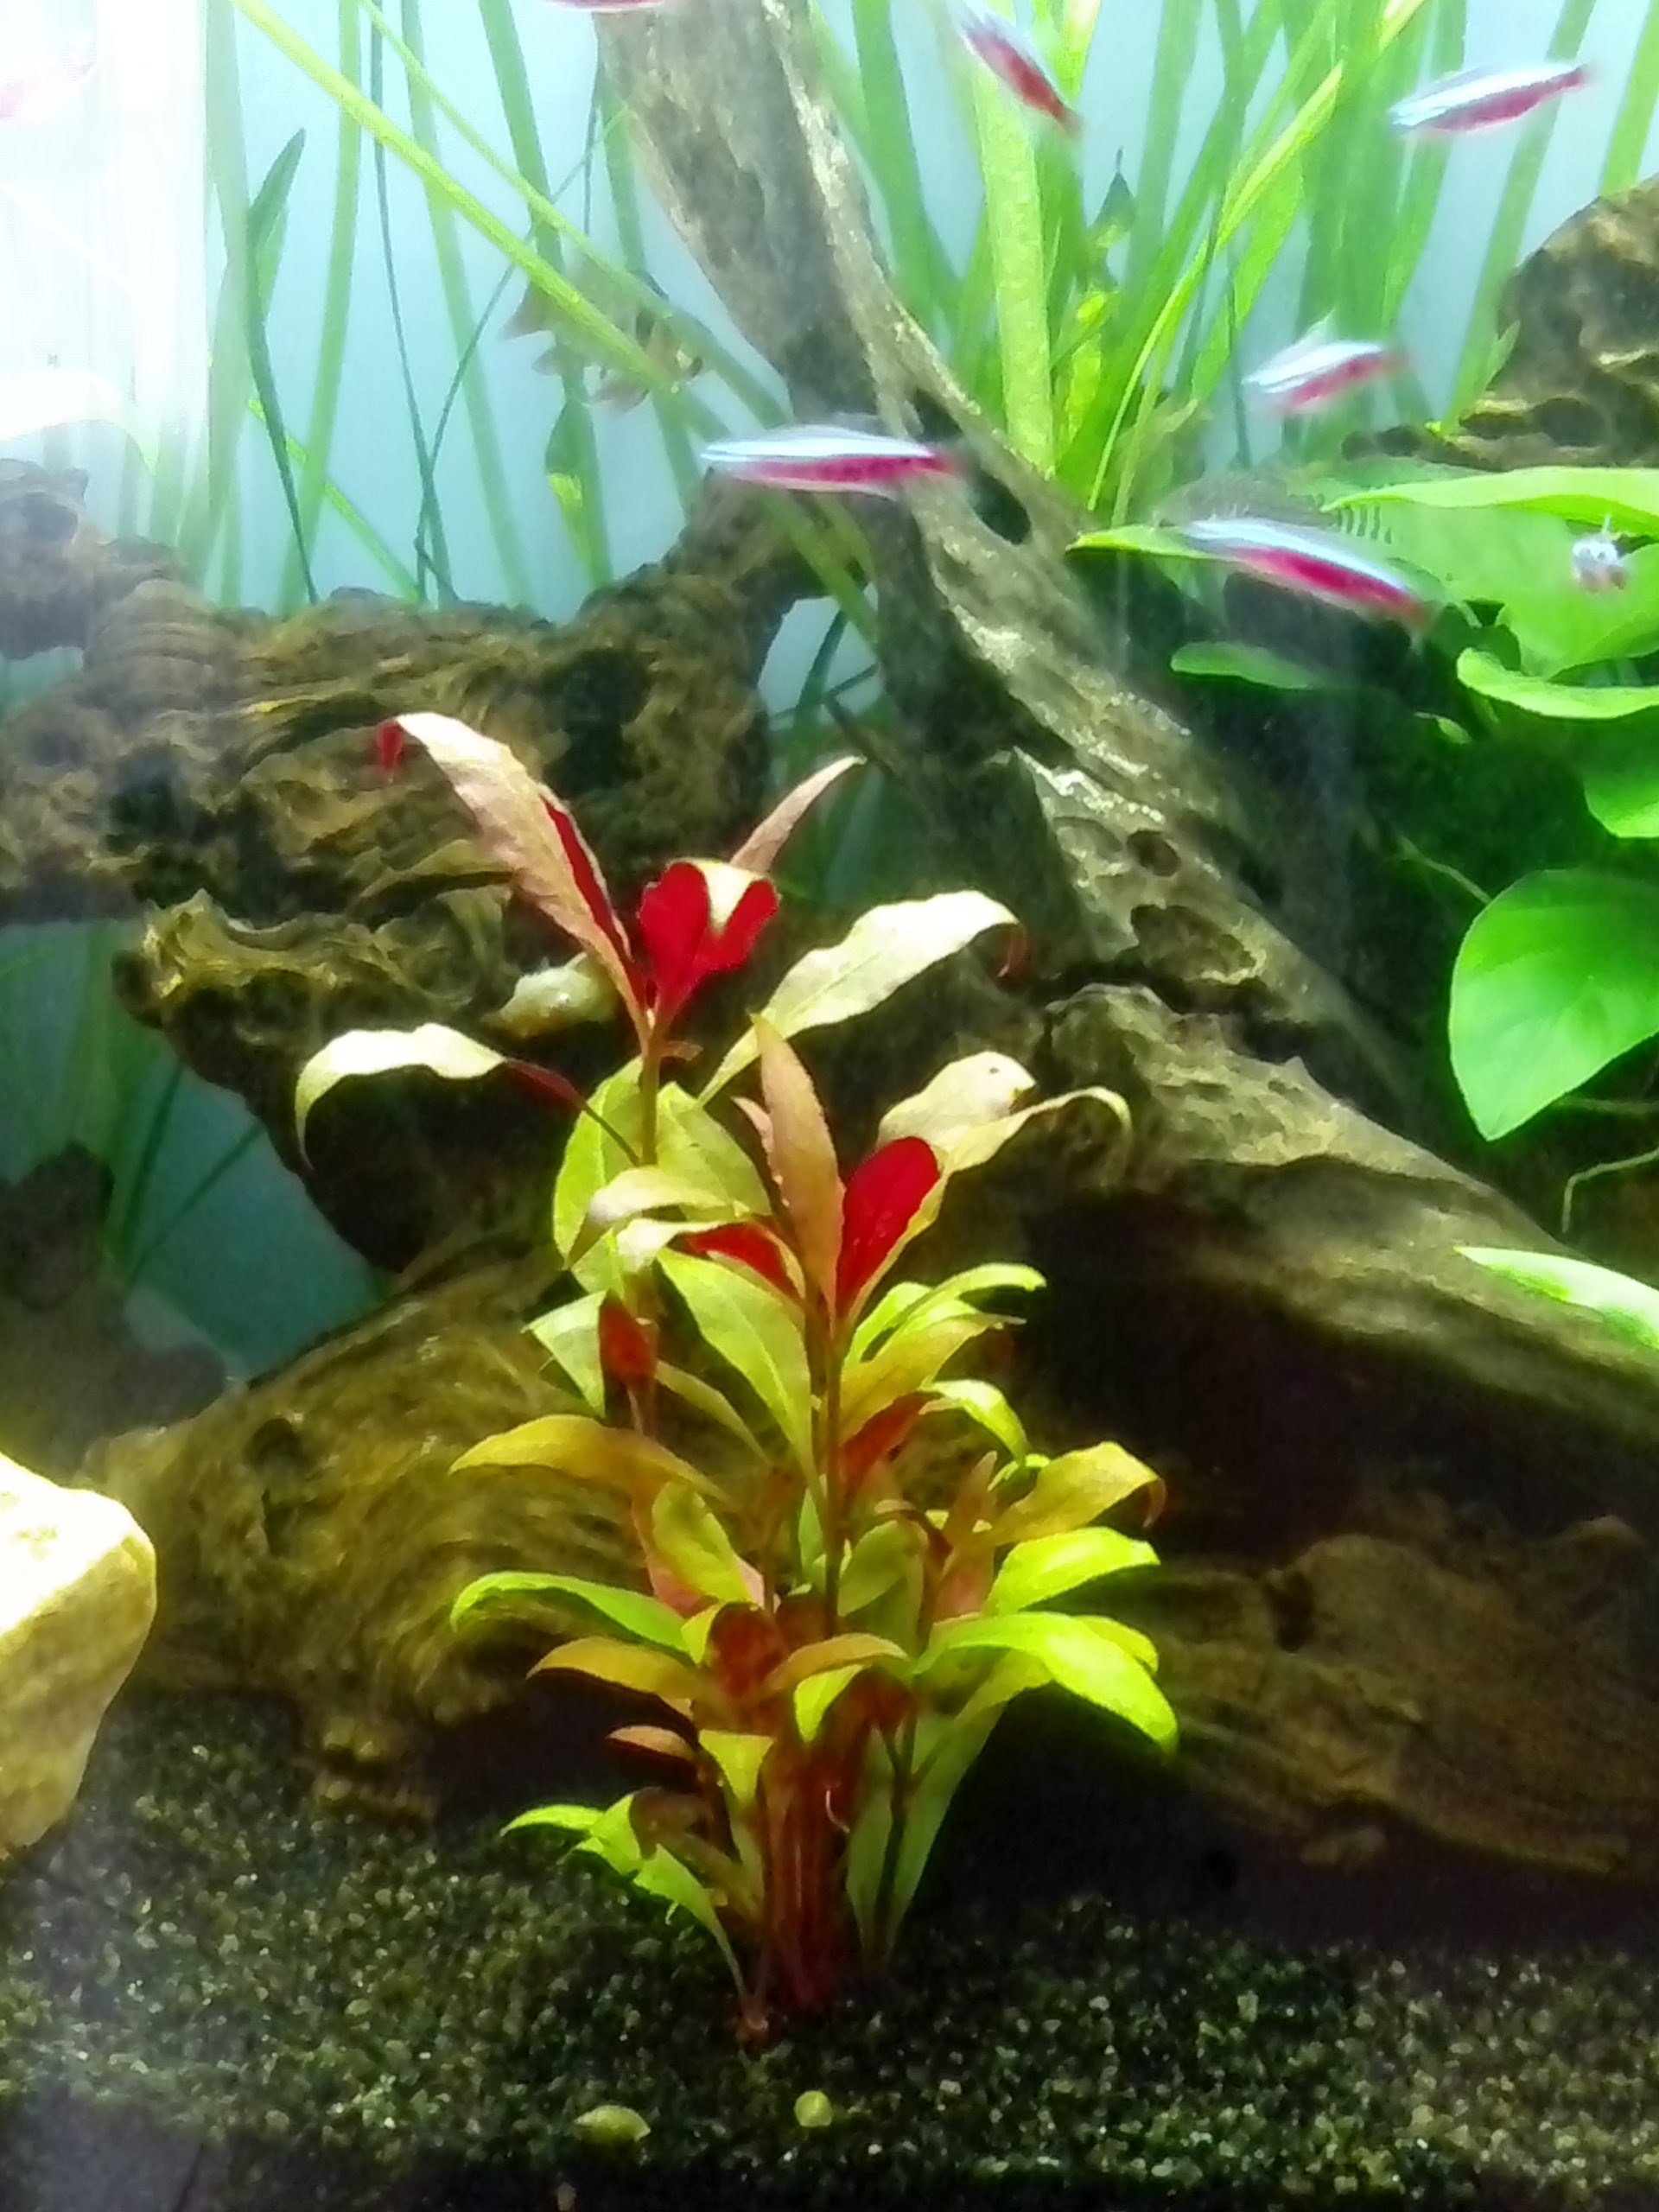 Plante rouge biotope amazonien